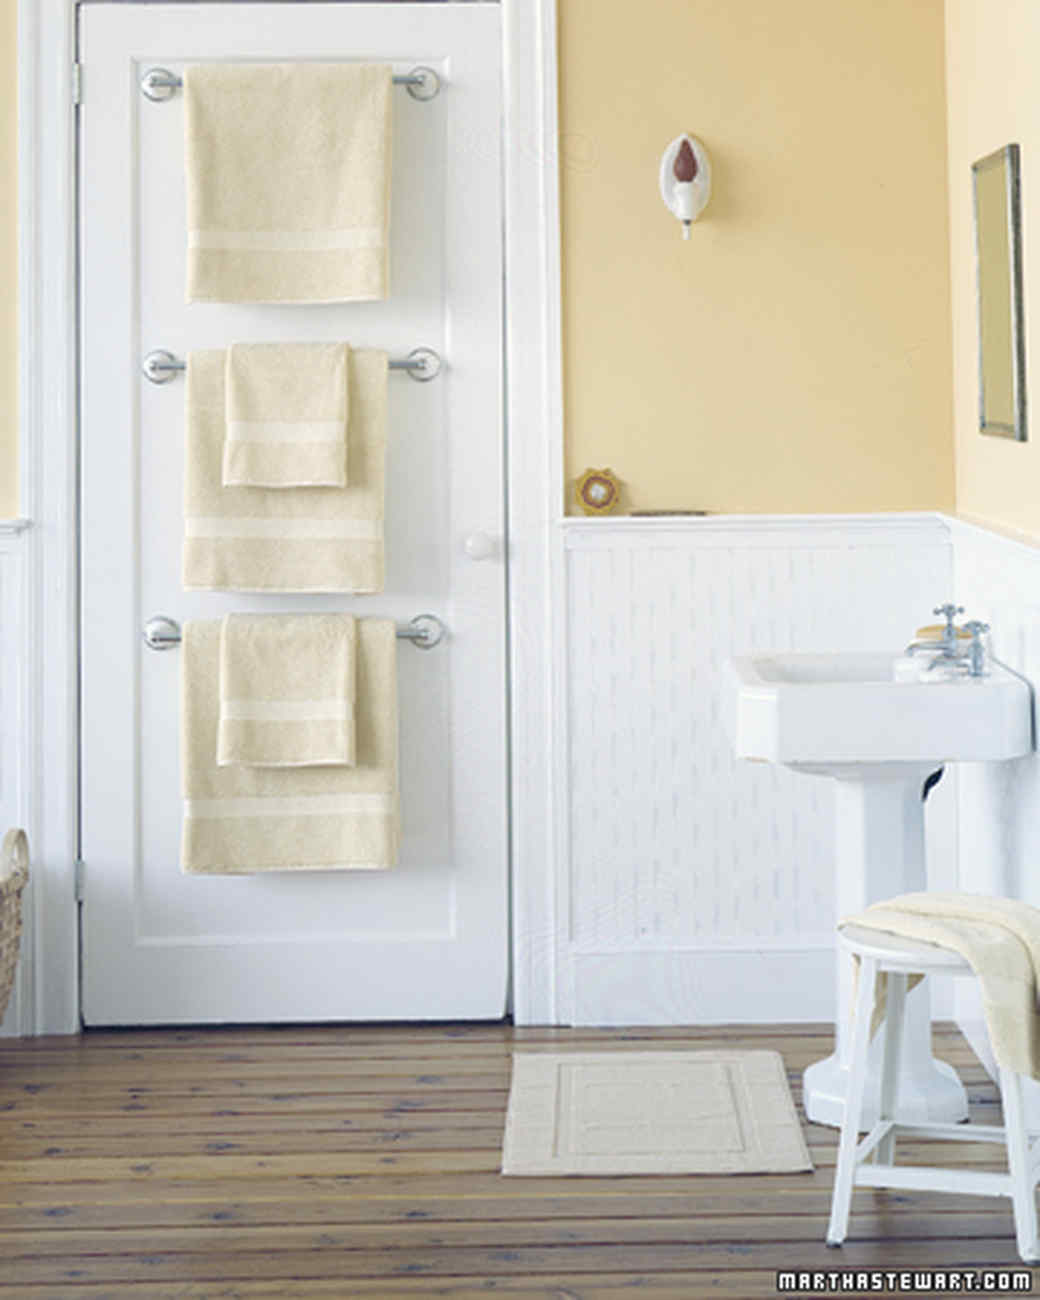 Bathroom Organizers Martha Stewart - Toilet organizer for small bathroom ideas